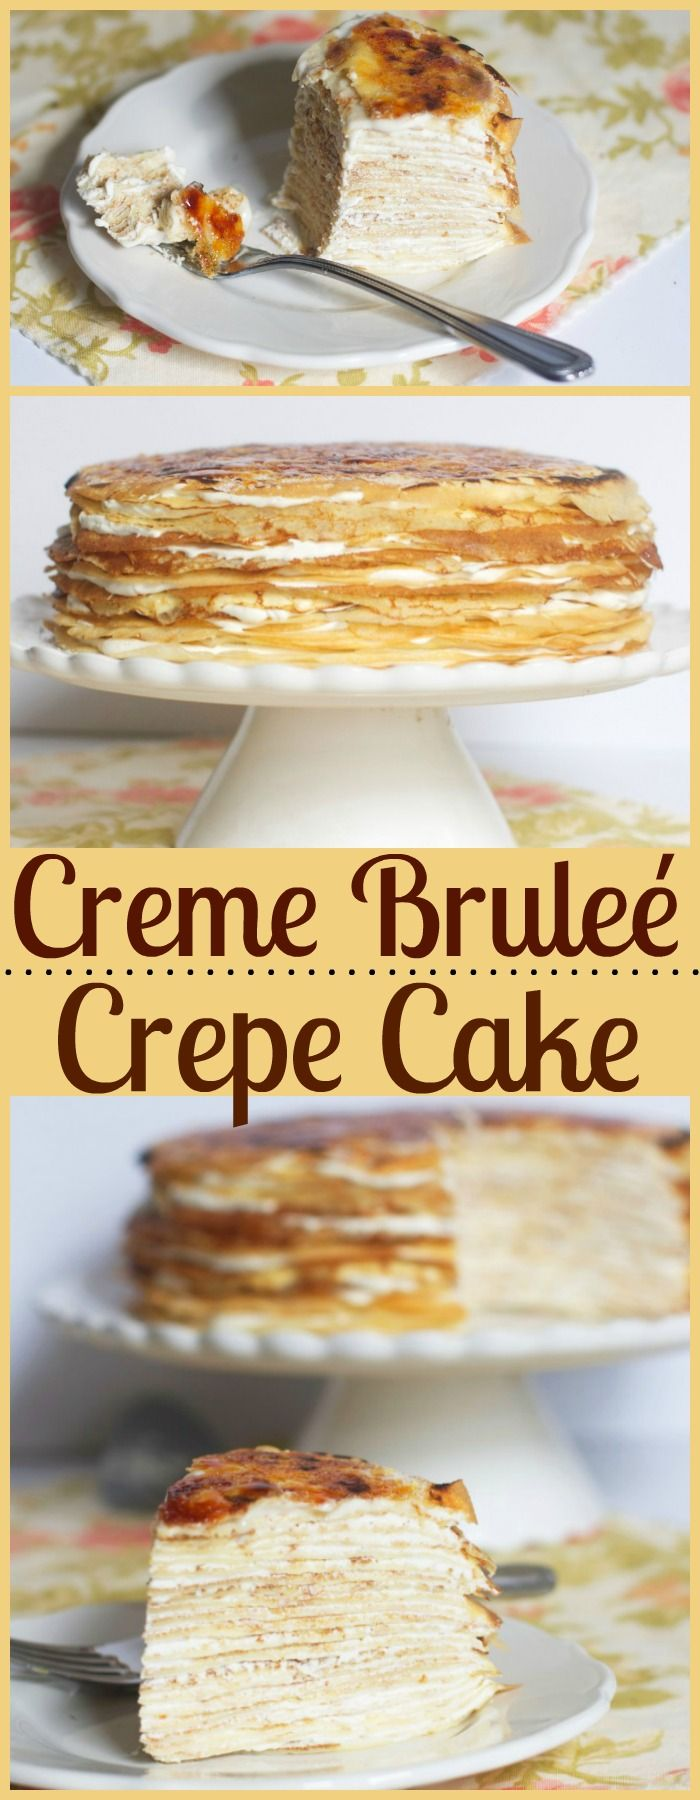 Creme Brulee Crepe Cake - the best of both worlds. #sweet #recipe